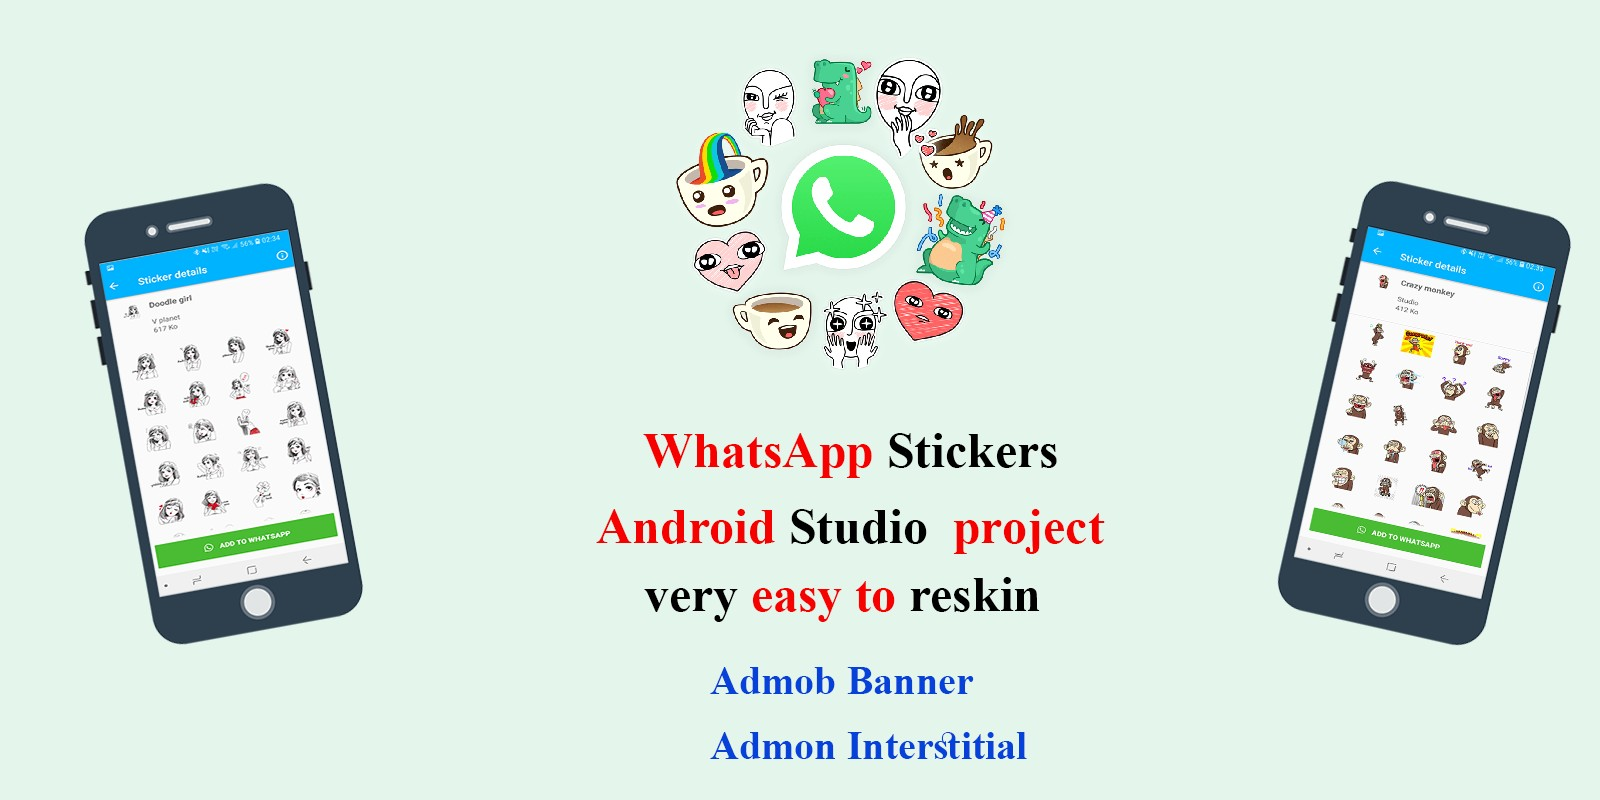 WhatsApp Stickers Android Studio Project